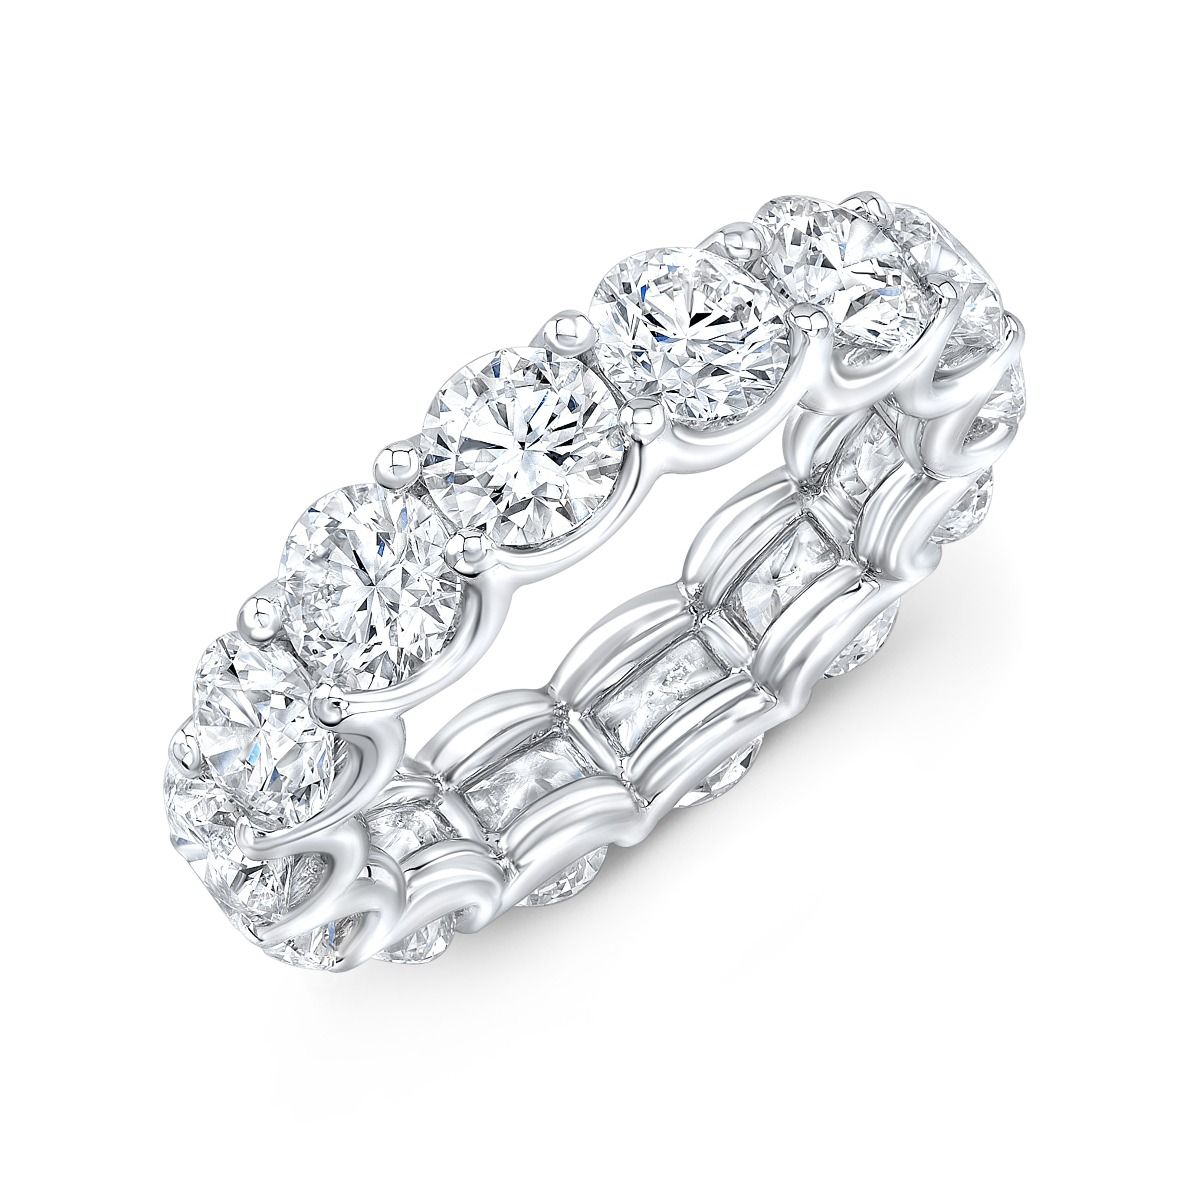 Round Cut Diamond Eternity Band in White Gold - 7 Carats Total